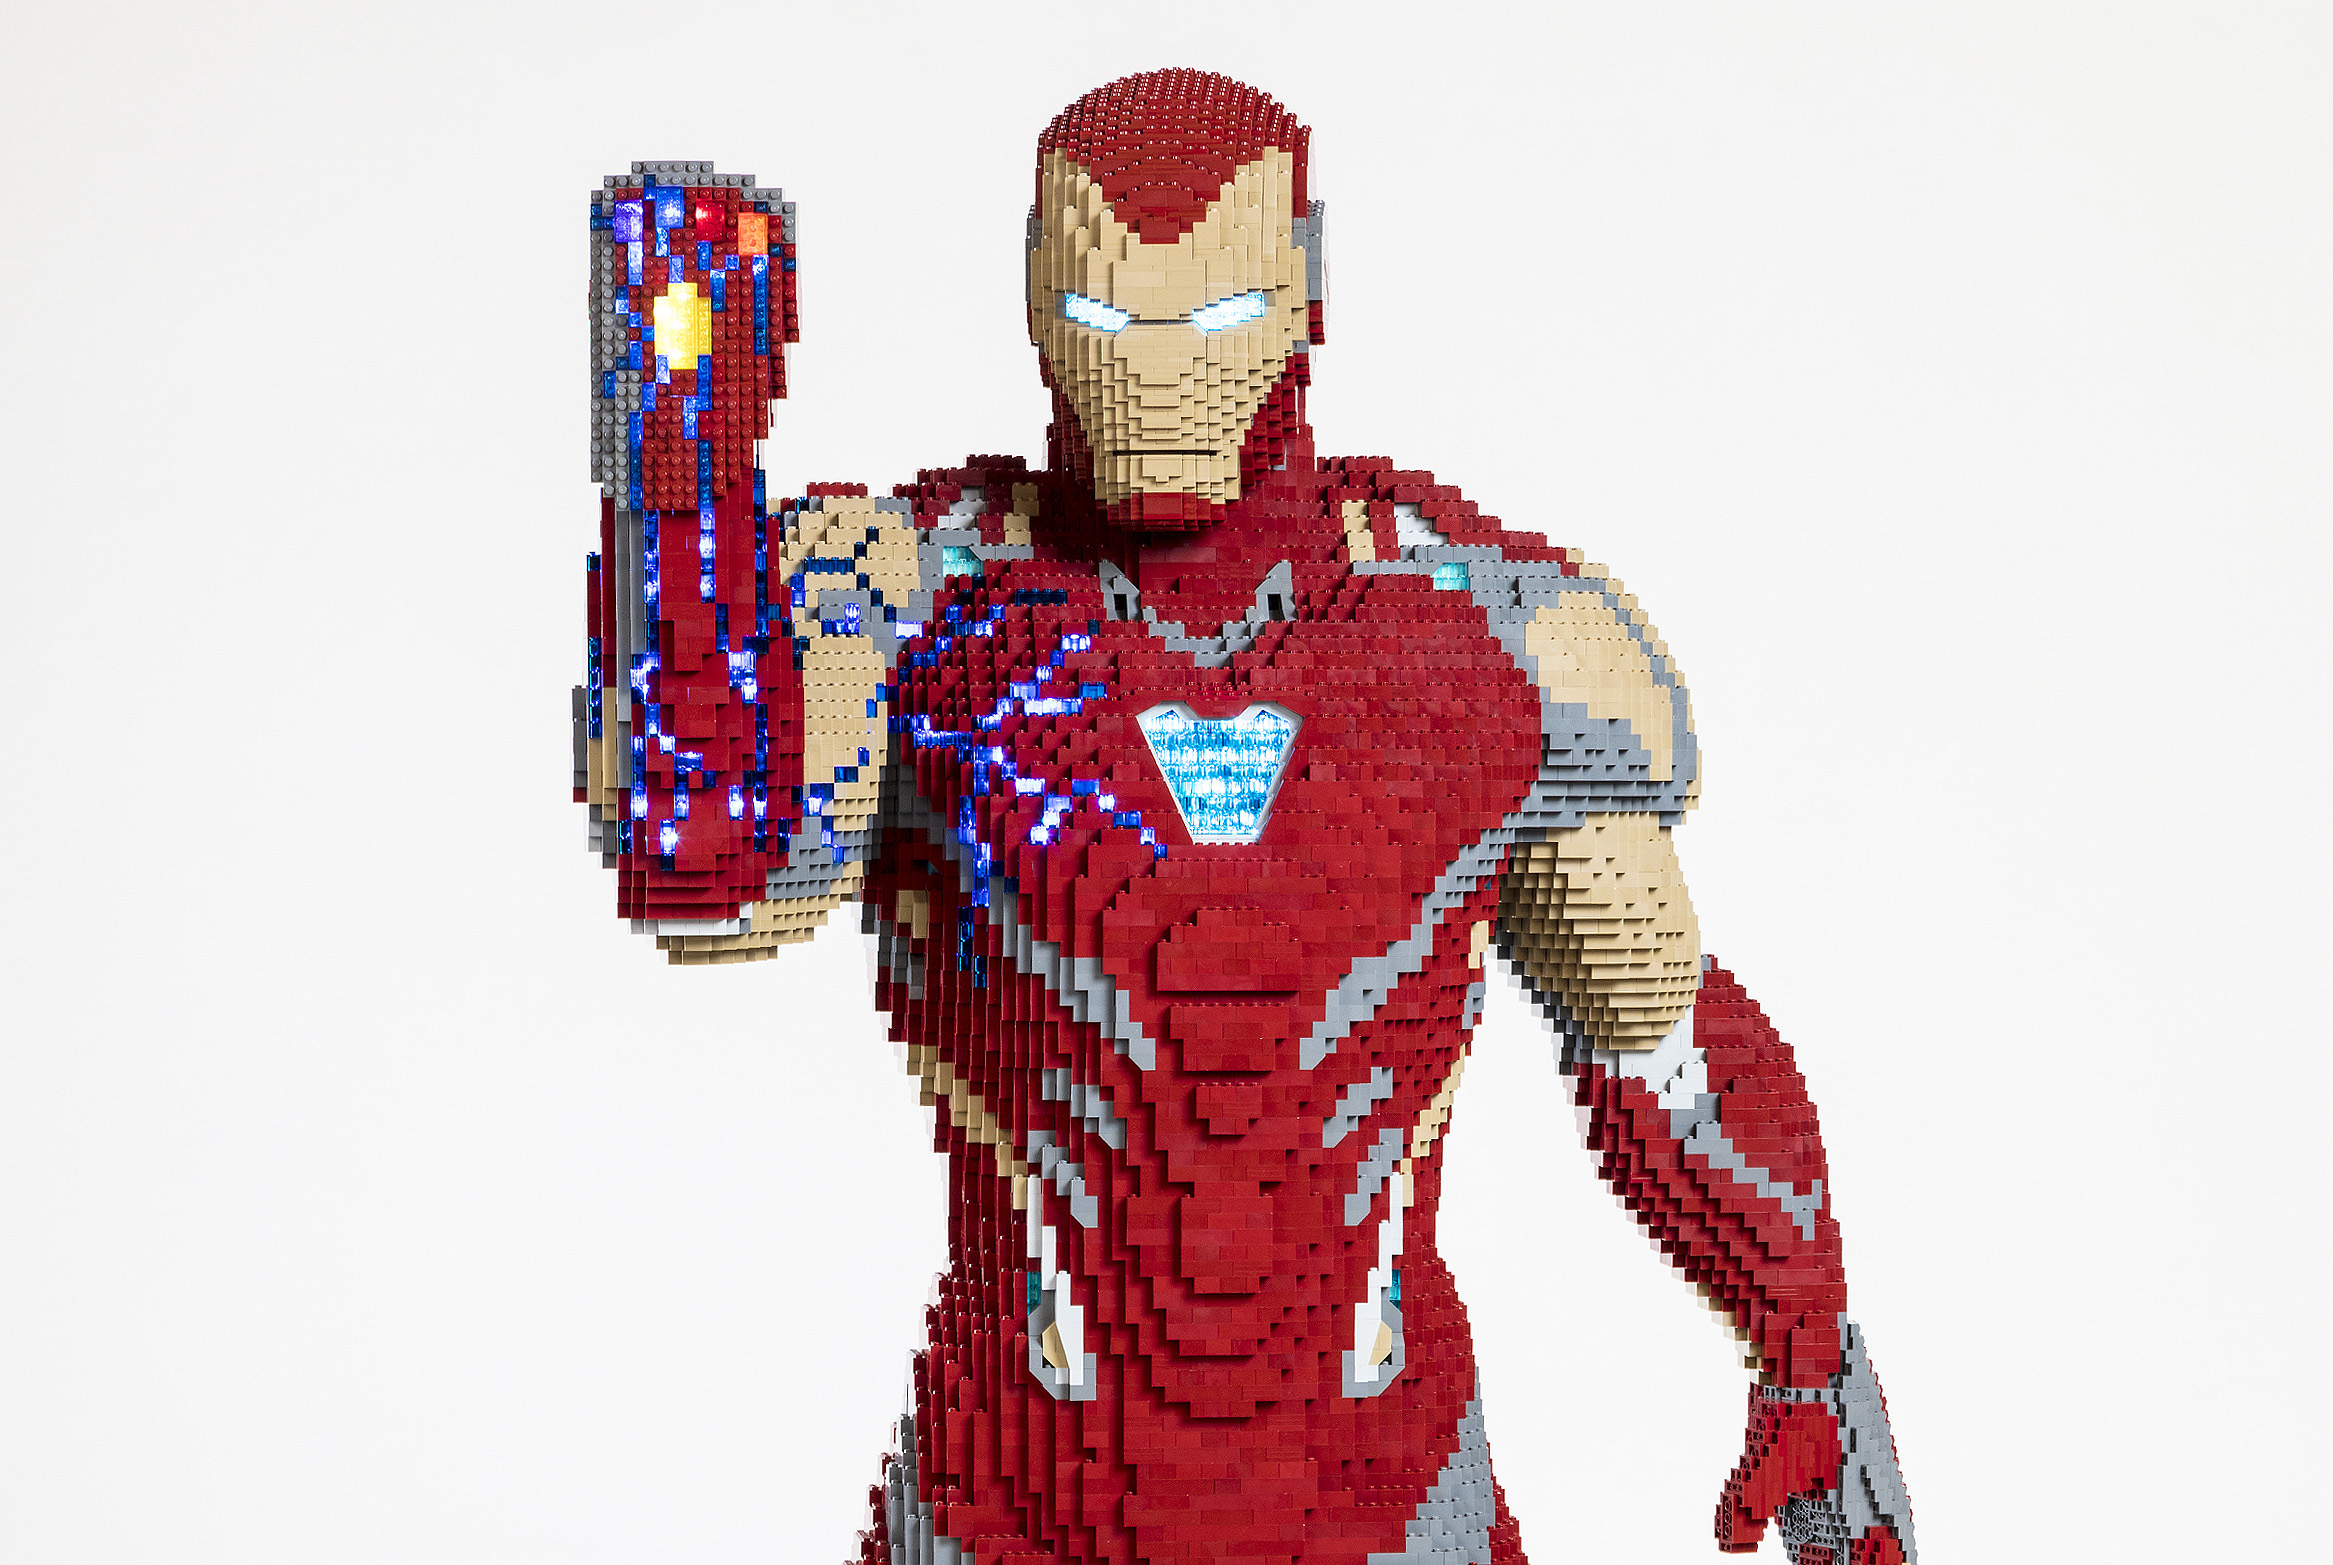 LEGO unveils life-size Iron Man with Infinity Gauntlet for SDCC 2019